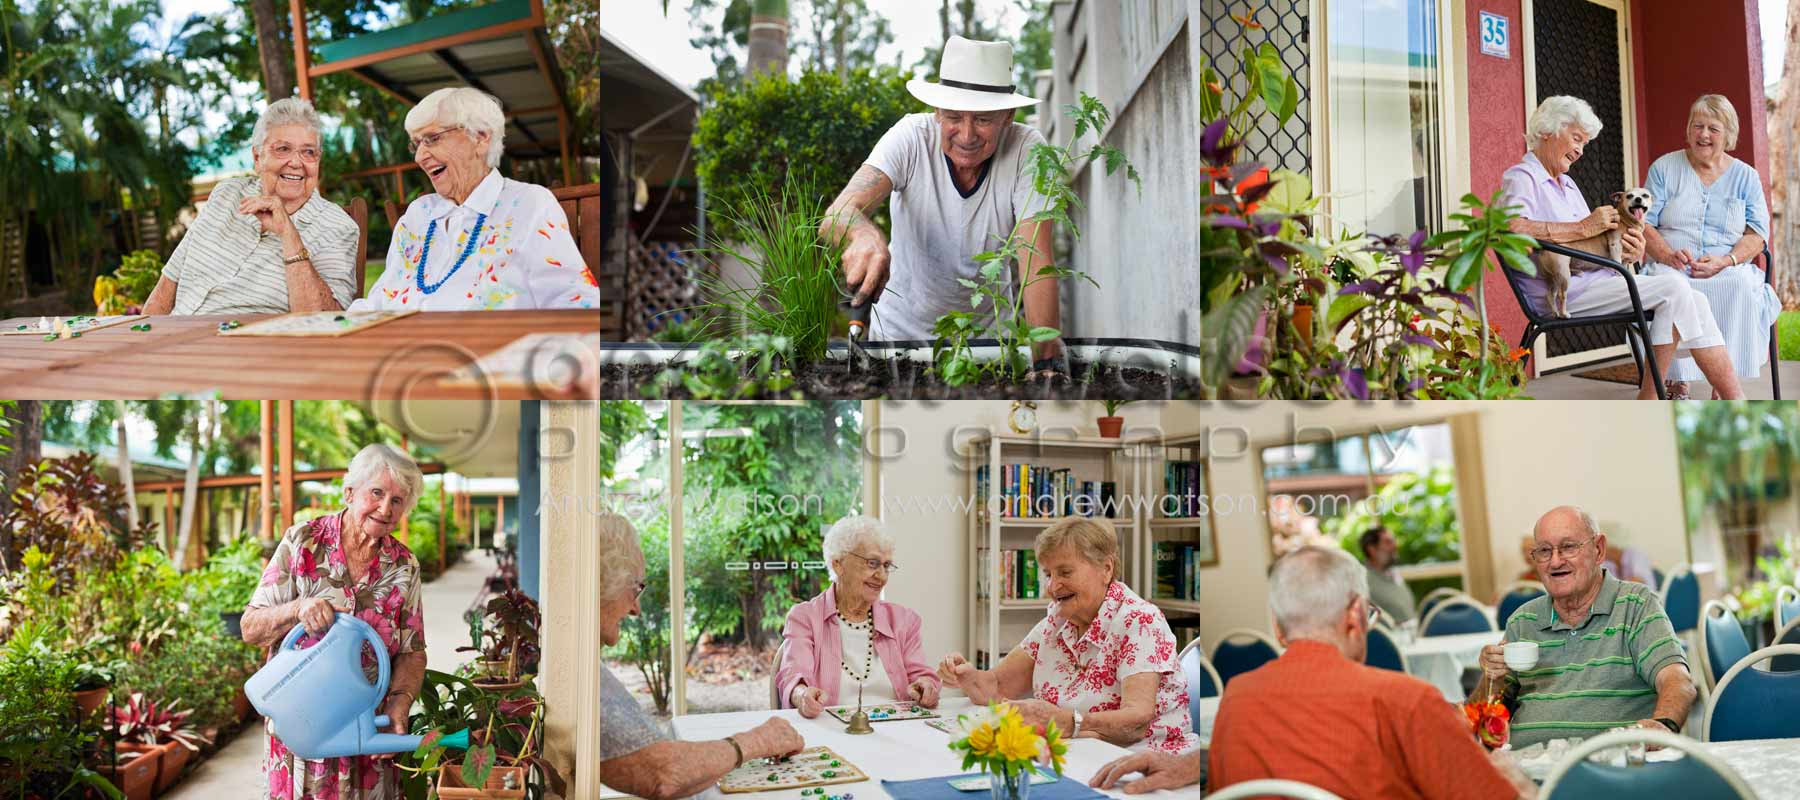 Lifestyle Photography - Images of retirement village residents